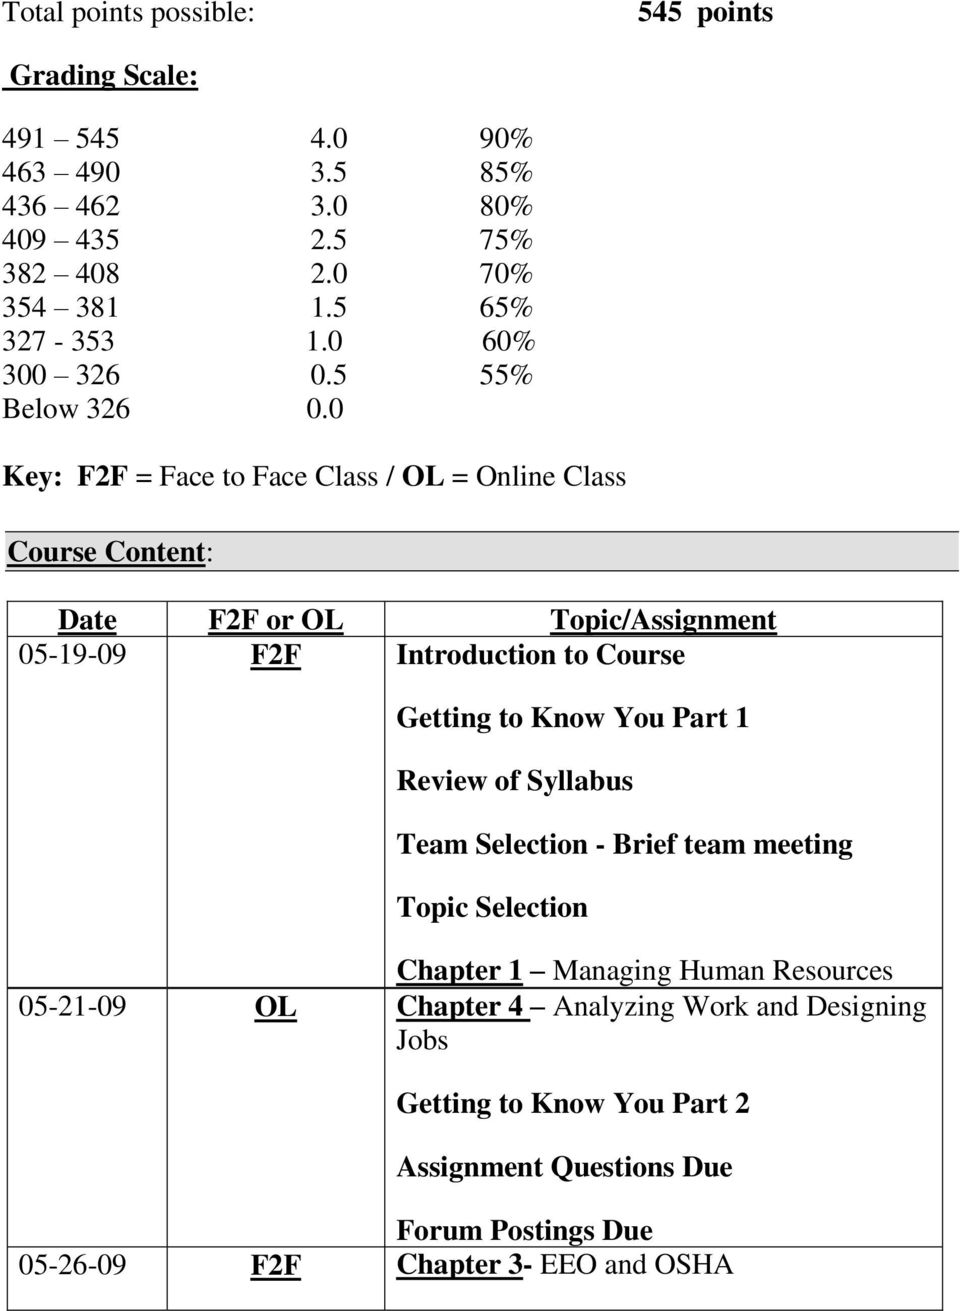 0 Key: F2F = Face to Face Class / OL = Online Class Course Content: Date F2F or OL Topic/Assignment 05-19-09 F2F Introduction to Course Getting to Know You